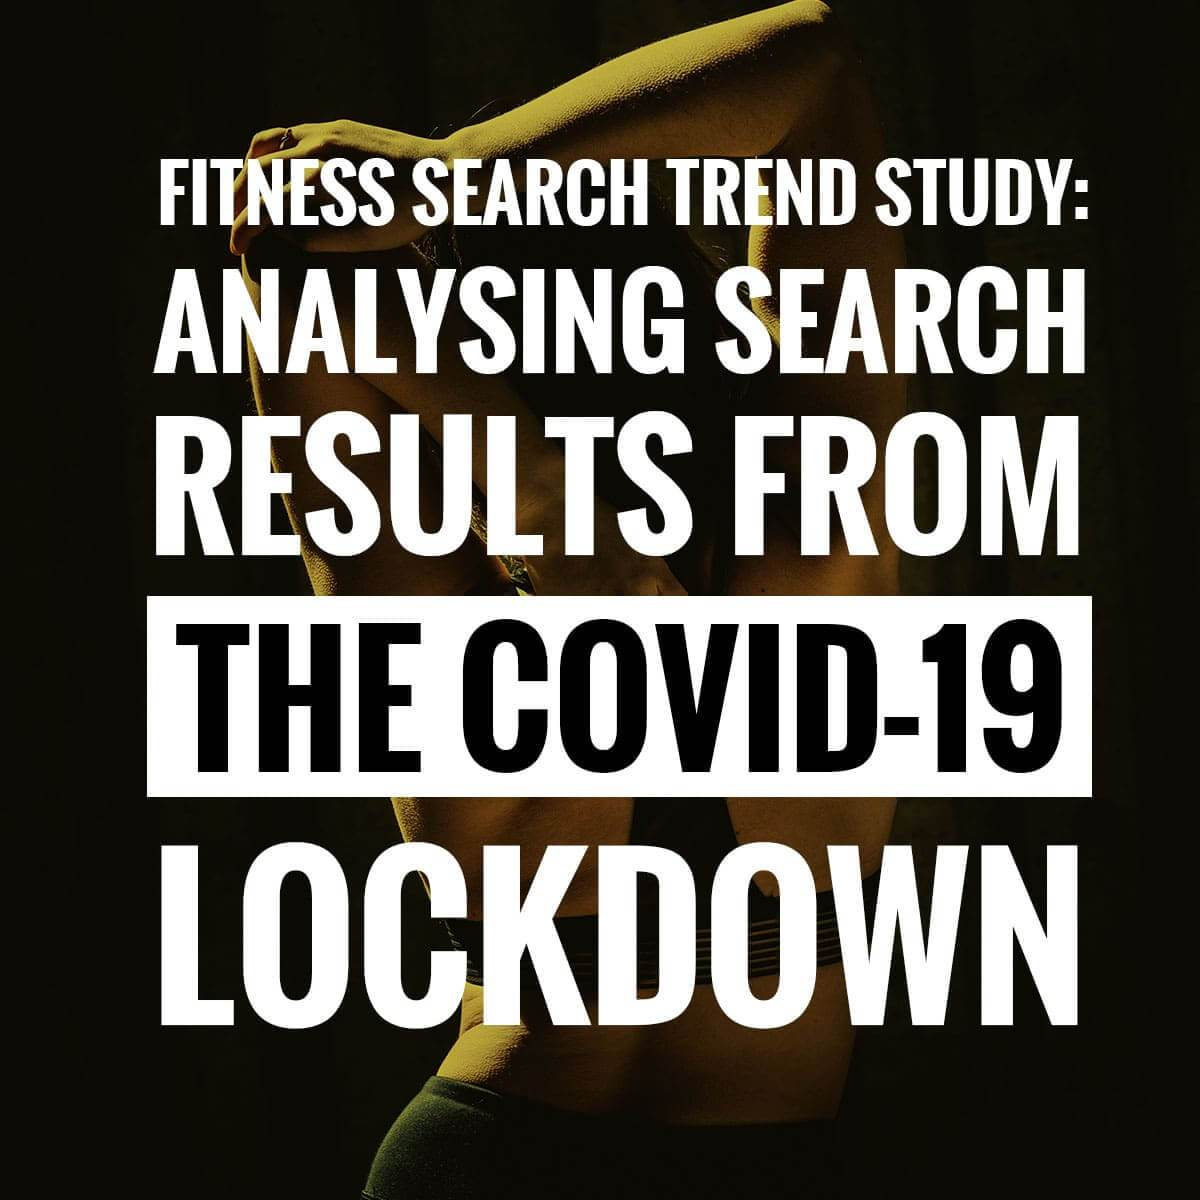 Fitness search trend study: analysing search results from the Covid-19 lockdown